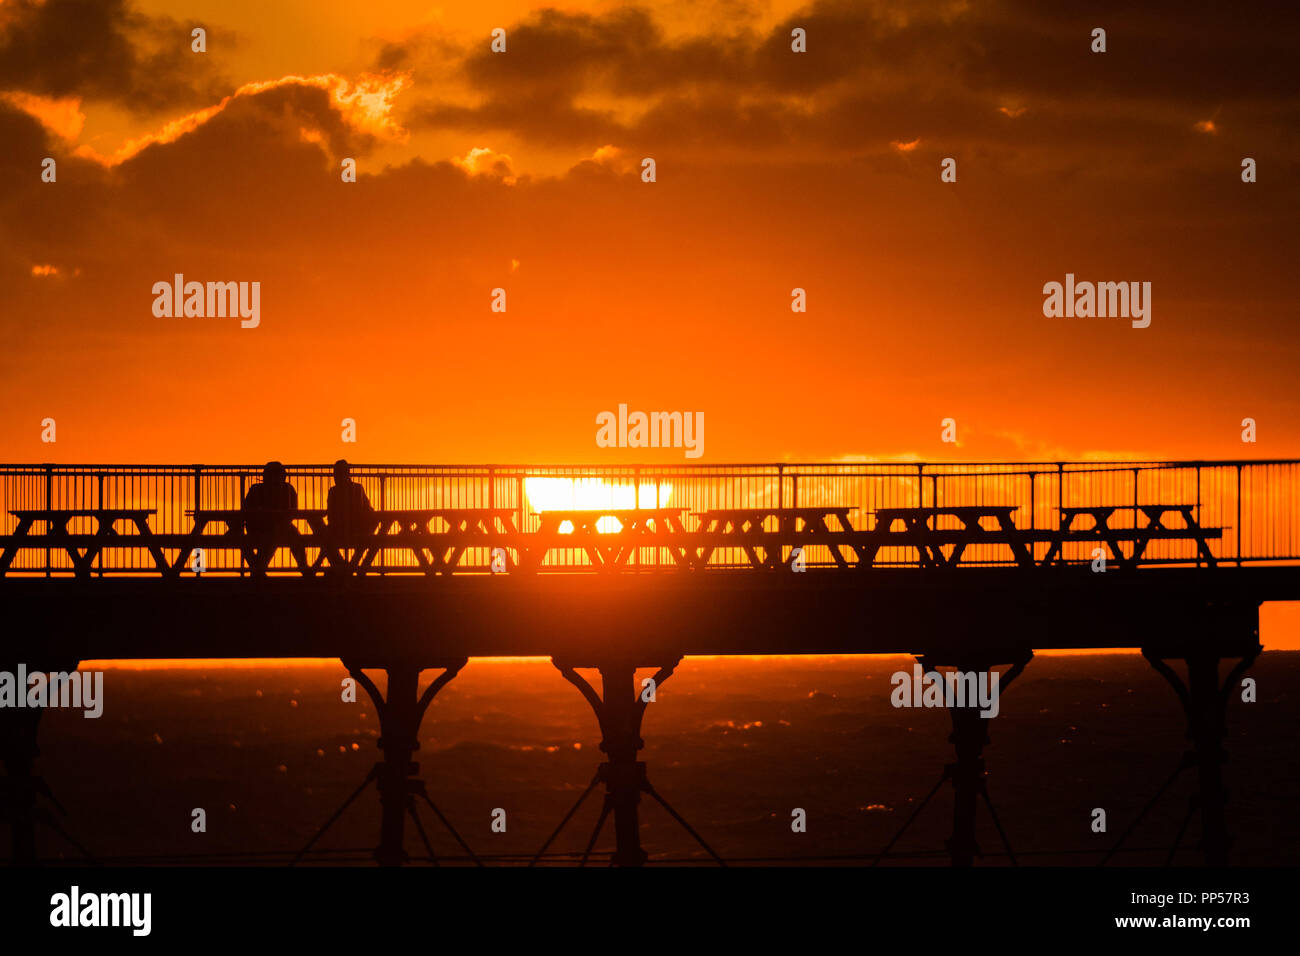 Aberystwyth Wales UK, Sunday 23 September 2018  UK Weather:  A fiery sunset over the seaside pier on Equinox Sunday evening in Aberystwyth on the west wales coast.  Today was the last day of Astronomical Summer - when the days and night are of equal lengths. From tomorrow the nights are longer than the days, marking  the onset of Astronomical Winter in the northern hemisphere  Photo © Keith Morris / Alamy Live News Stock Photo